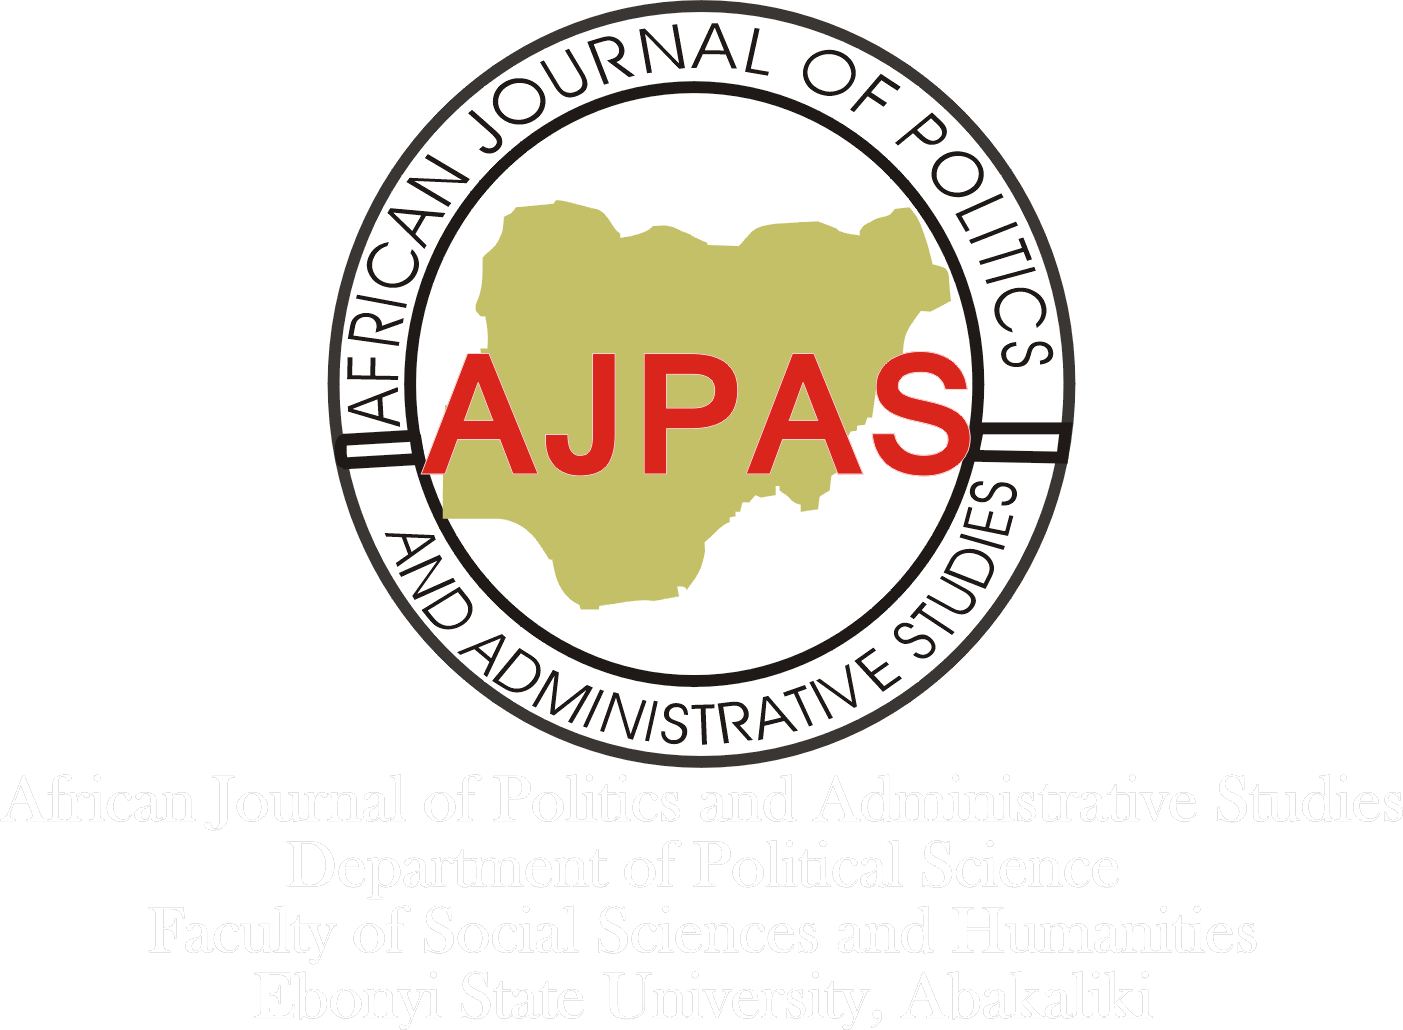 AFRICAN JOURNAL OF POLITICS AND ADMINISTRATIVE STUDIES